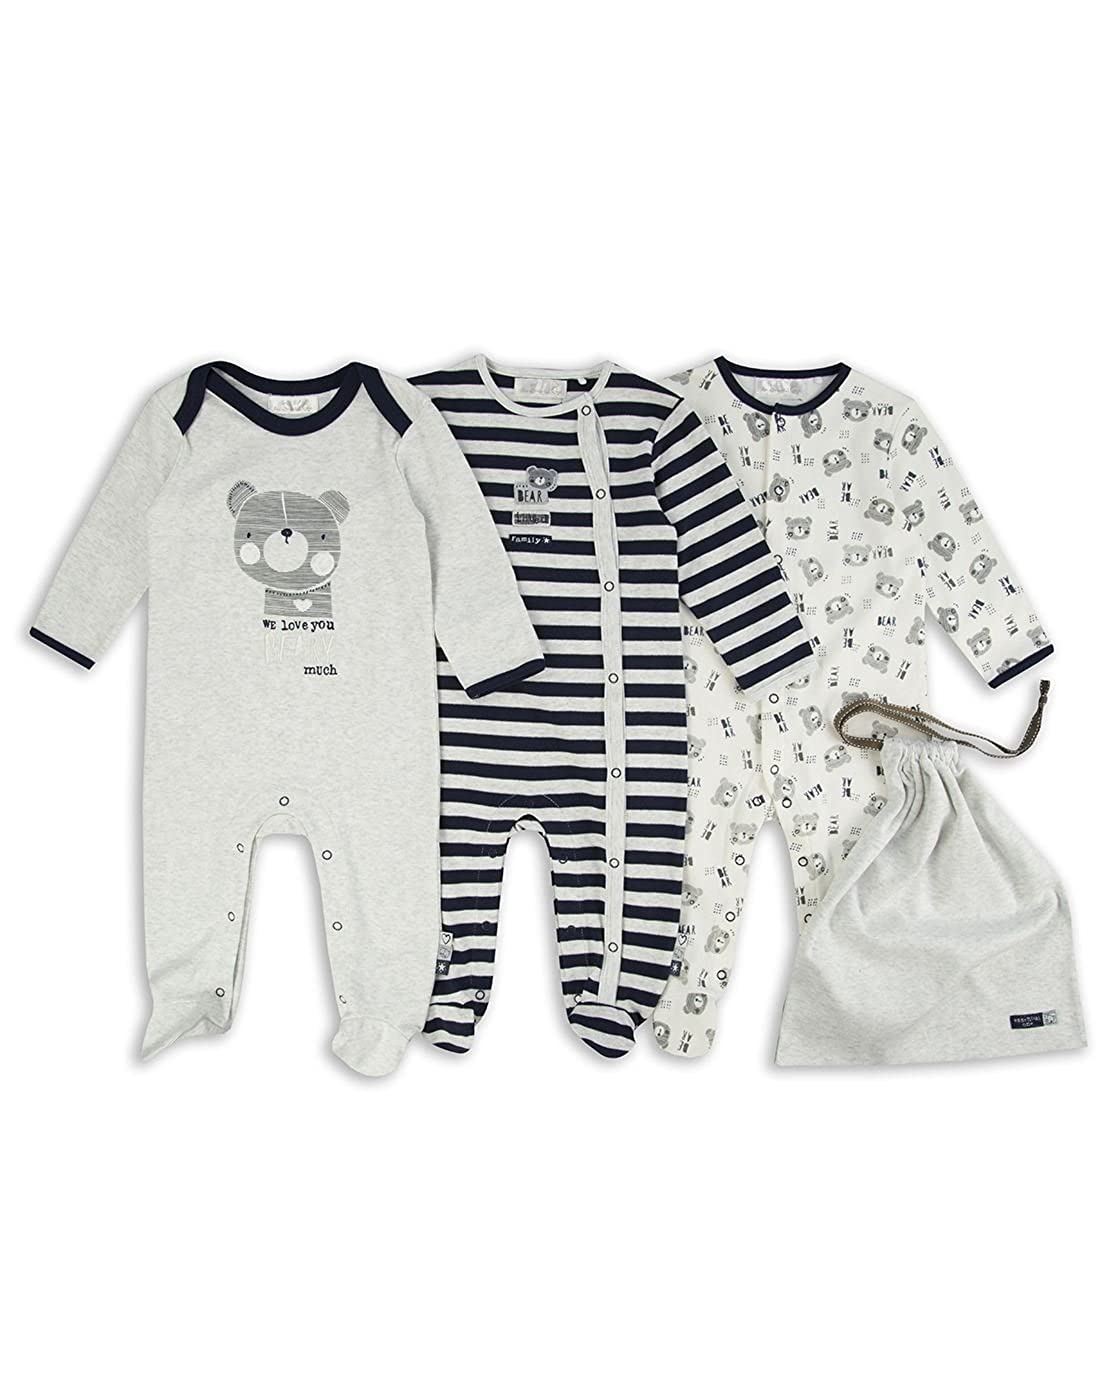 The Essential One - Baby Boys Beary Much Sleepsuits Babygrows - 3 Pack - Blue/Grey / White - ESS181